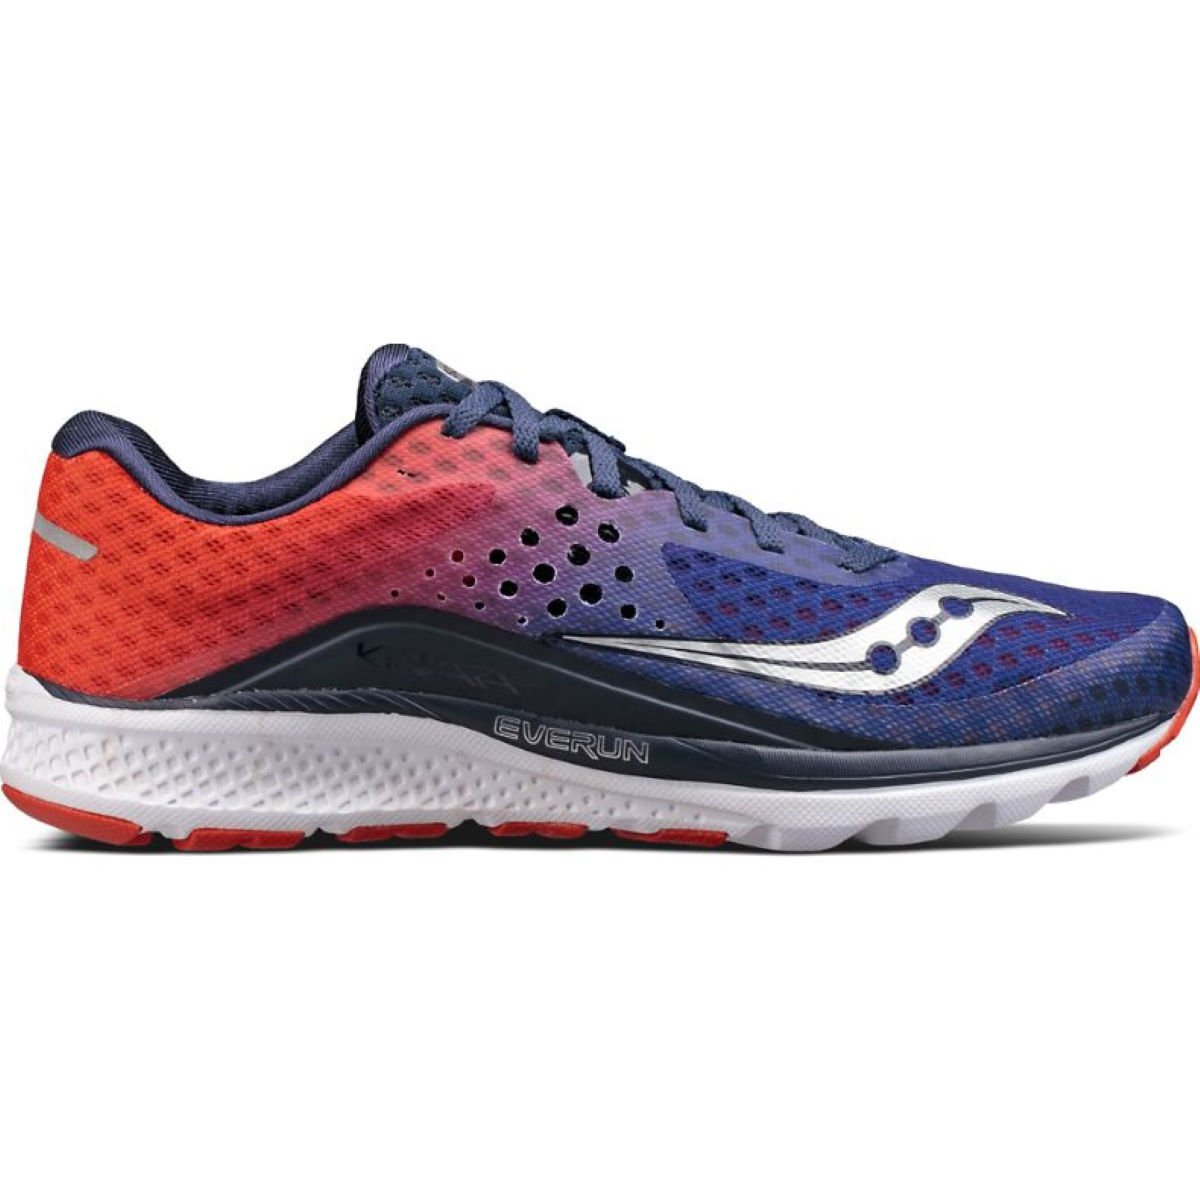 Saucony Kinvara 8 Shoes - Baskets rembourrées